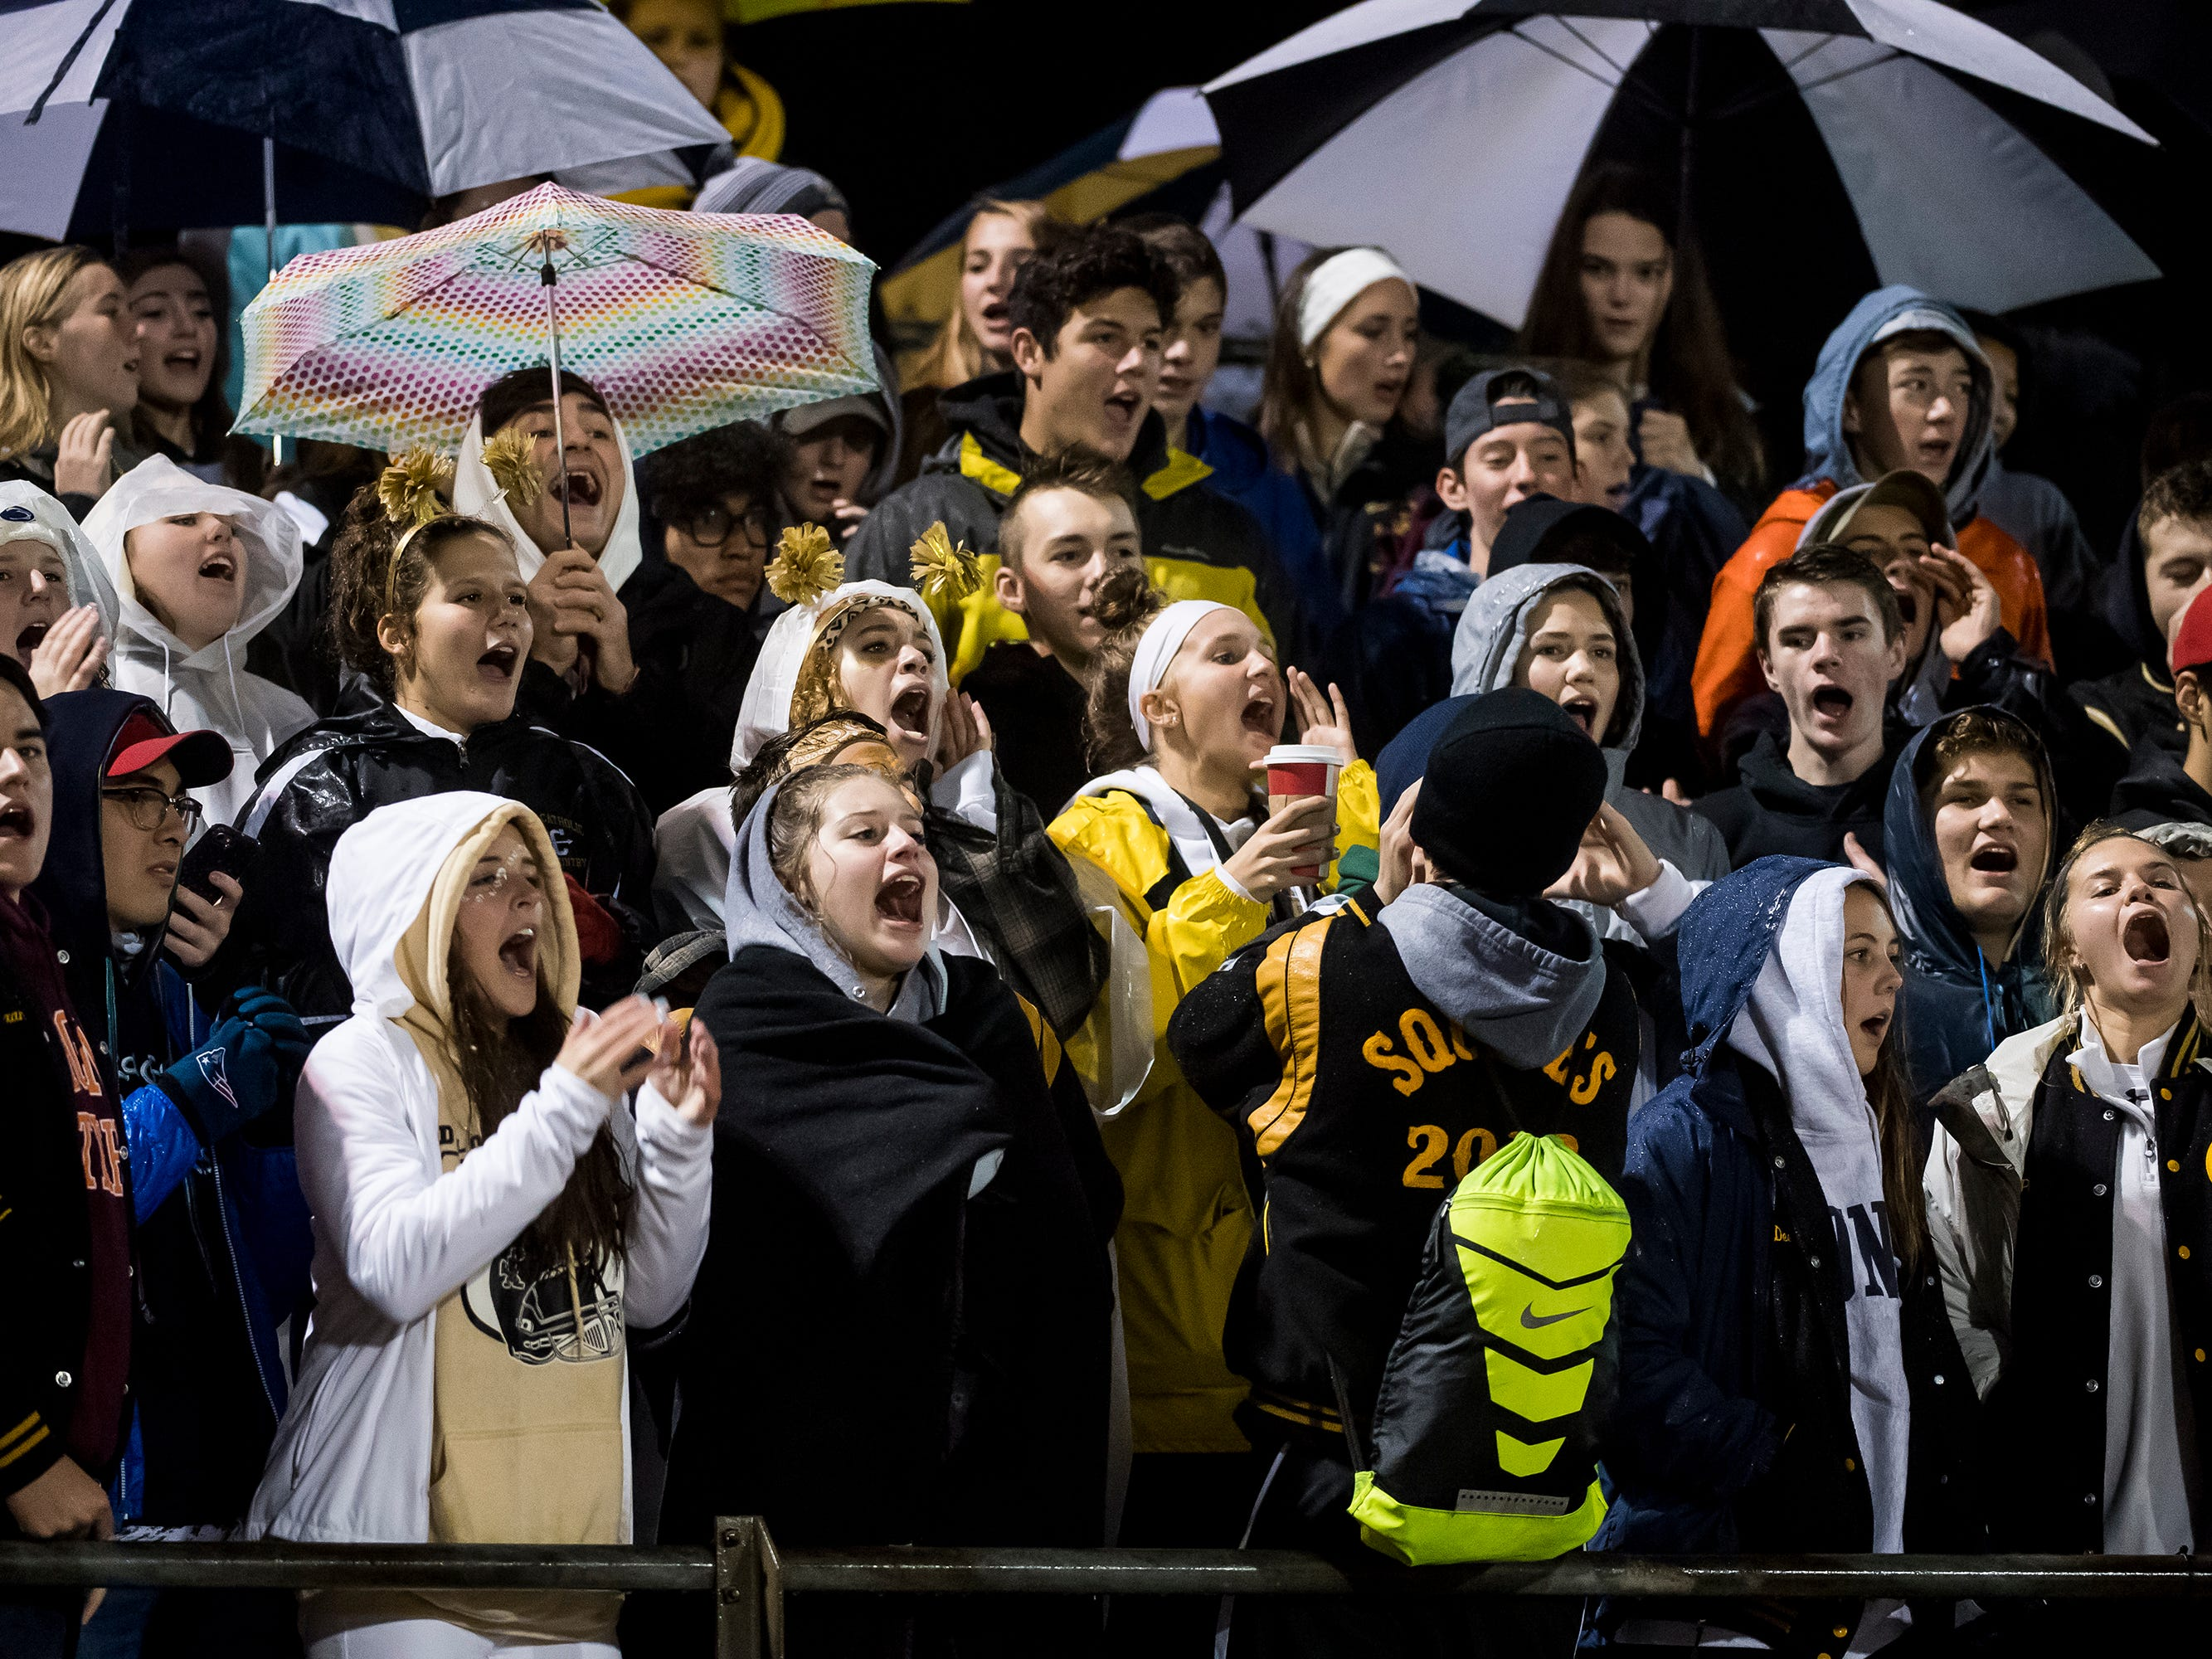 The Delone Catholic student section cheer on the Squires in the PIAA District 3 Class 2A championship game at South Western High School on Friday, November 9, 2018. The Squires fell to York Catholic 28-21 in overtime.